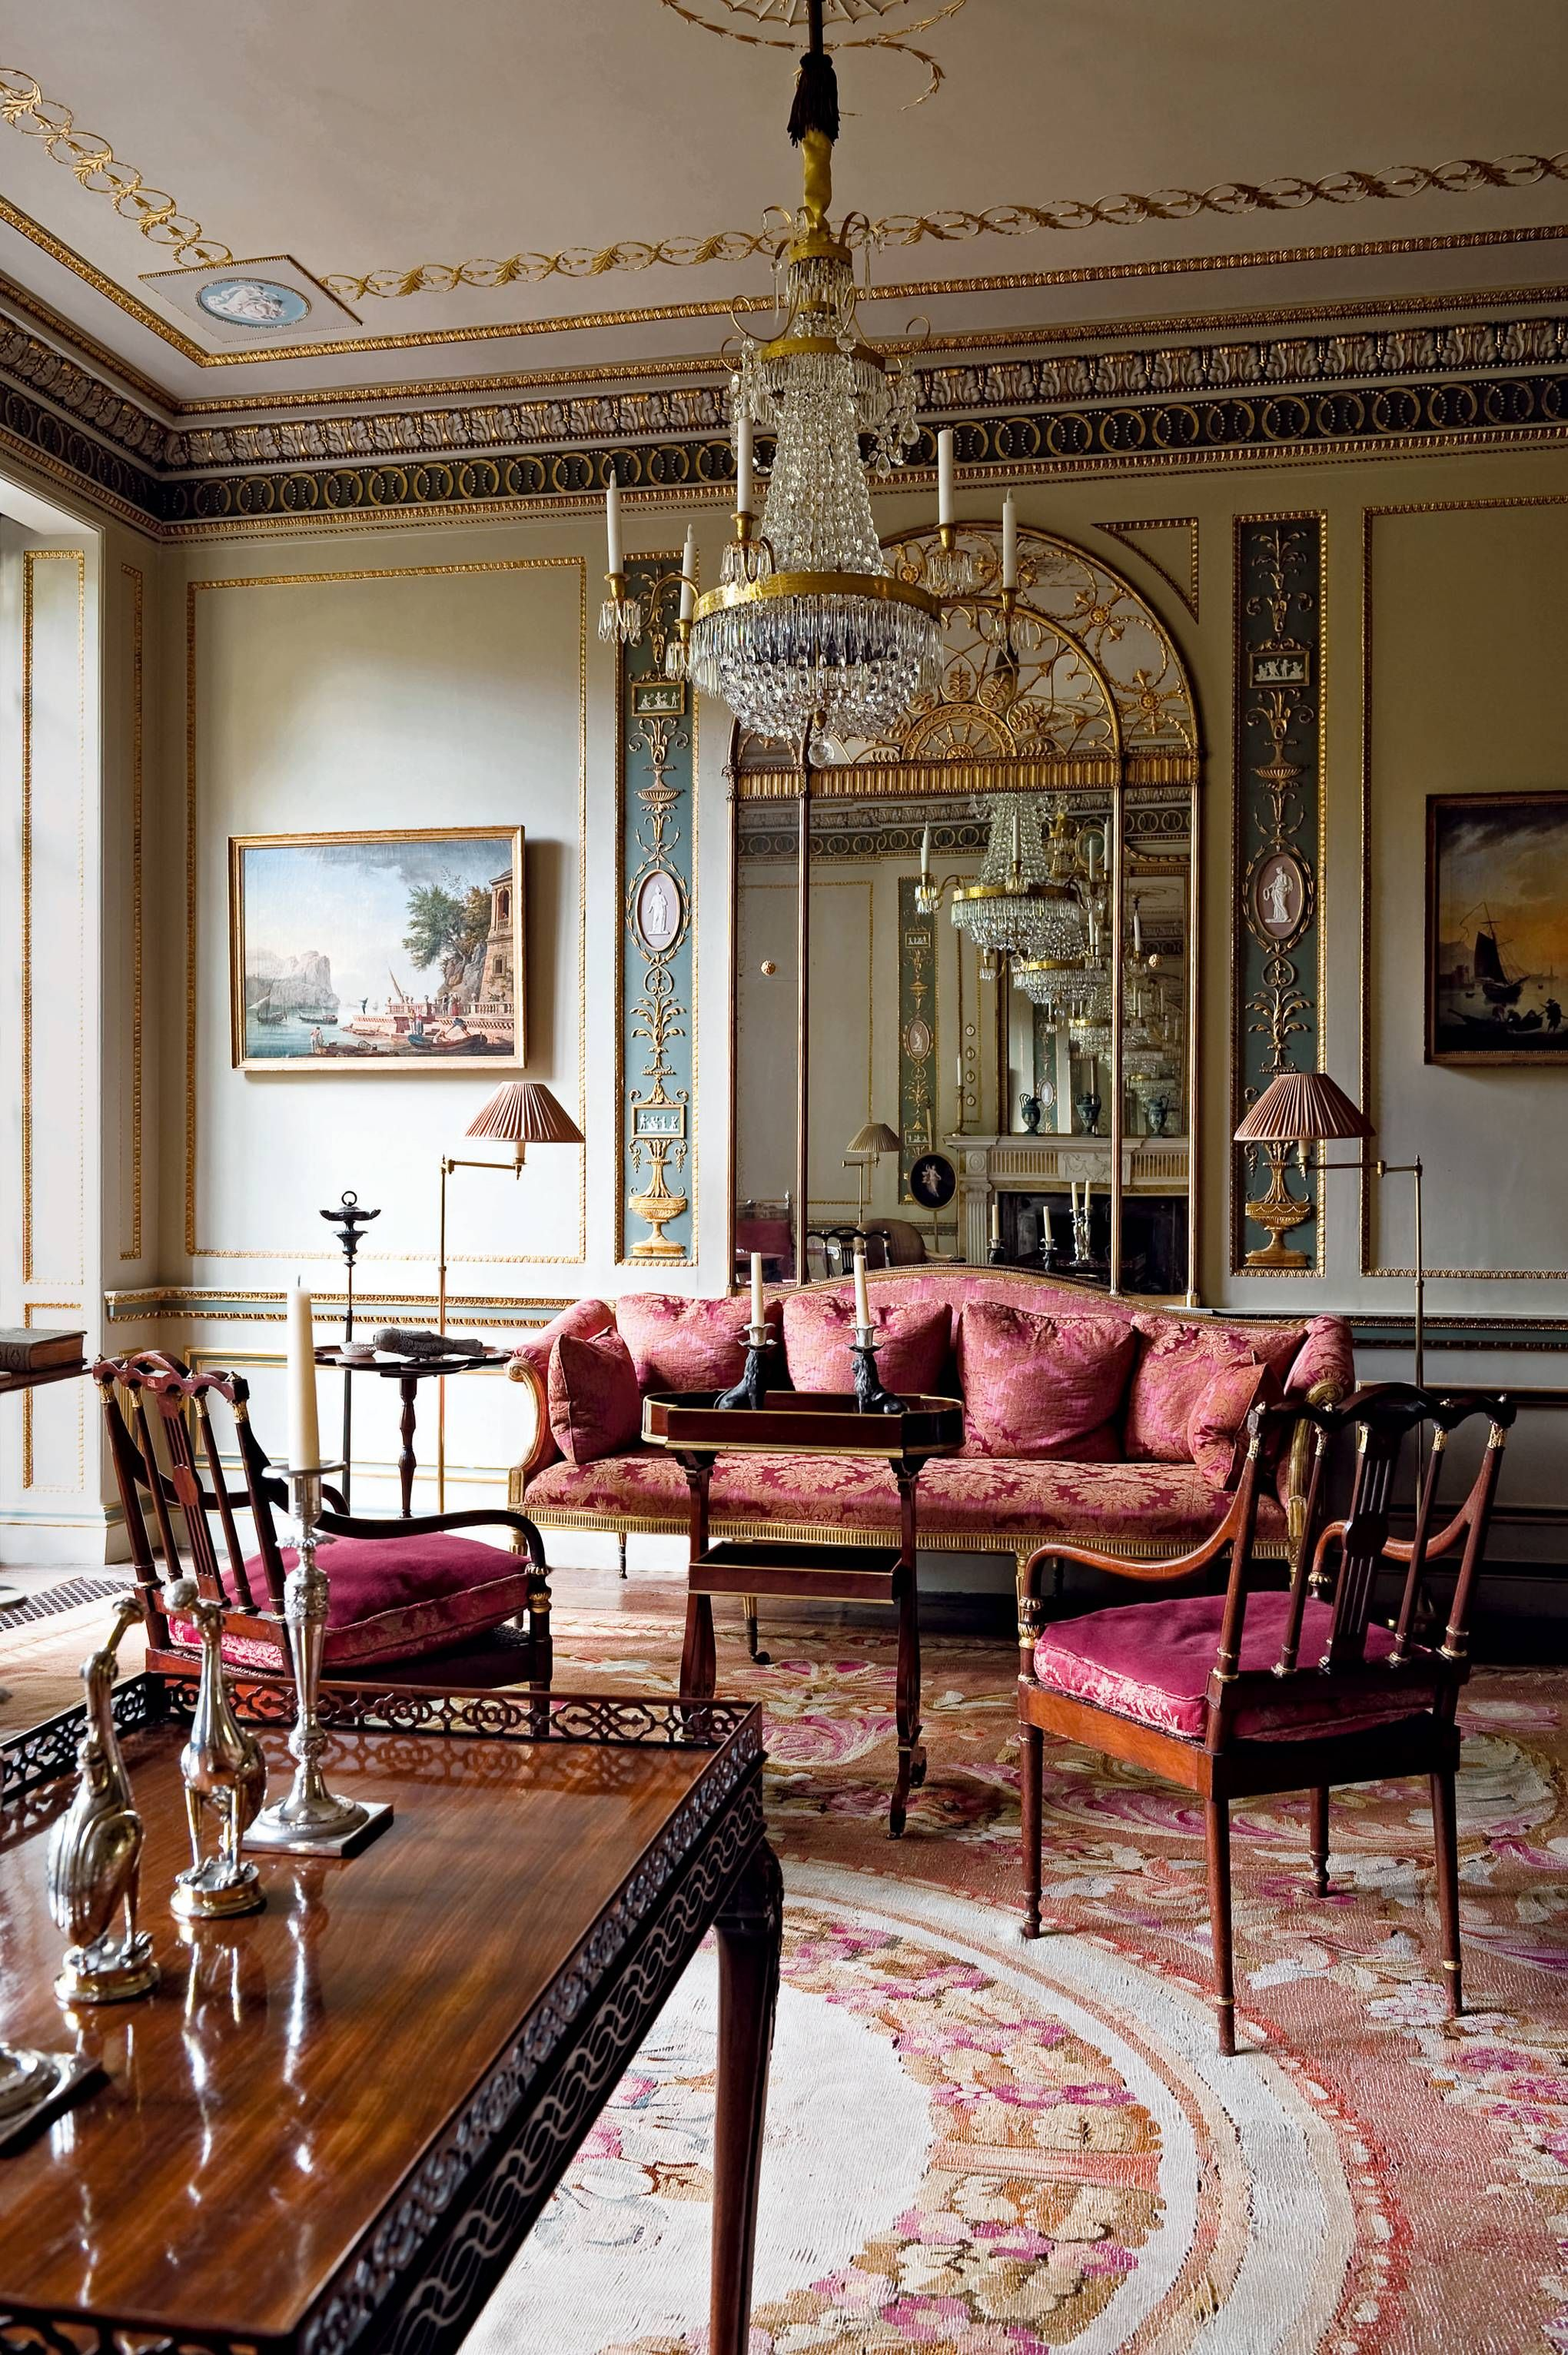 Home Interior Design Game Online: Timeless Elegance Is The Name Of The Game In This Venetian